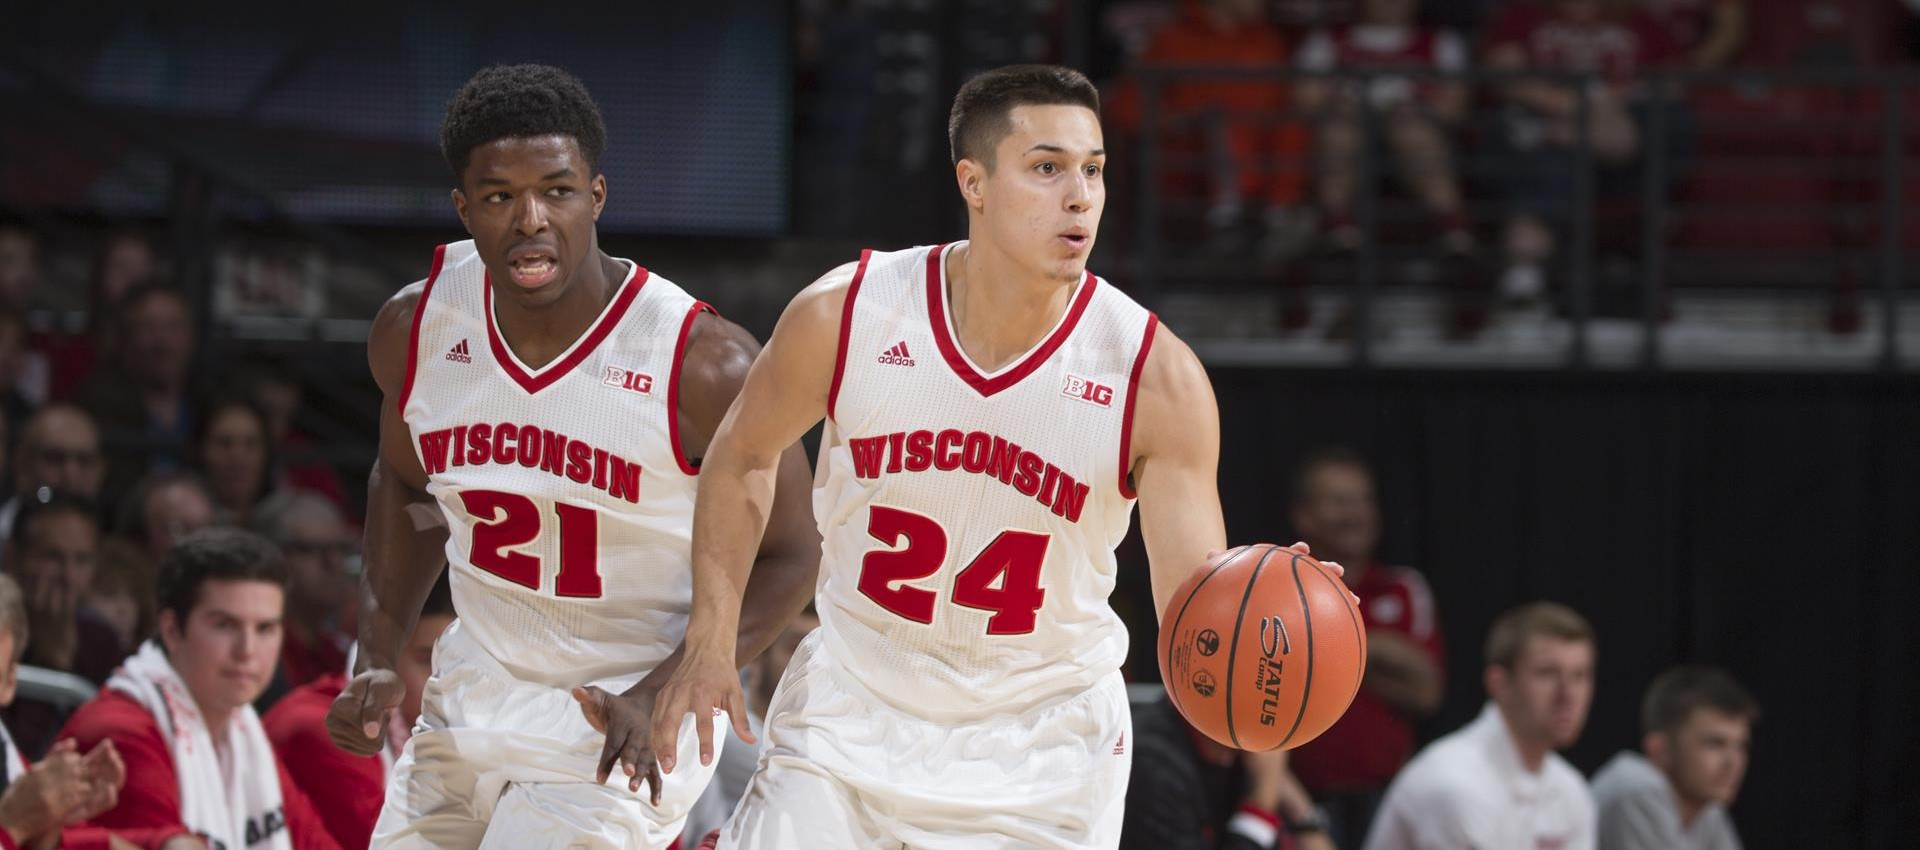 Hayes saves the day | Wisconsin Badgers